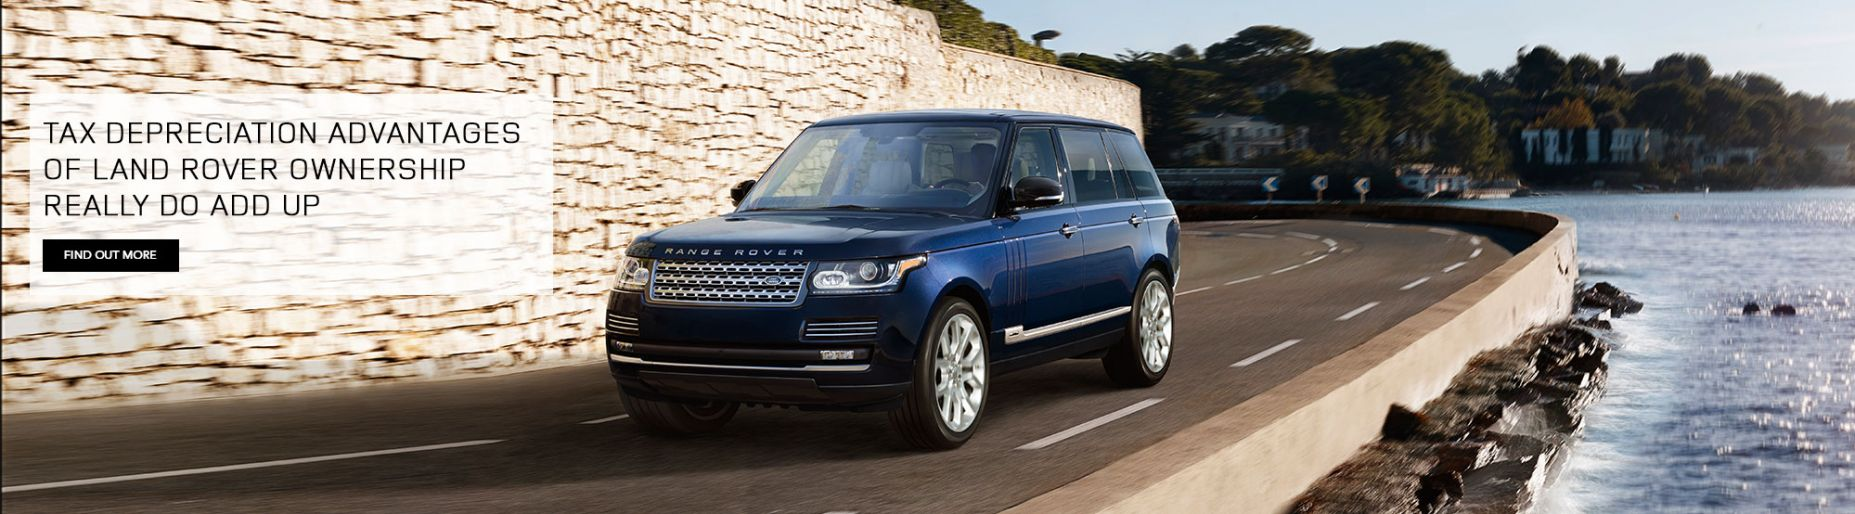 Lovely Portland Land Rover for your Vehicle Decorating Ideas With.